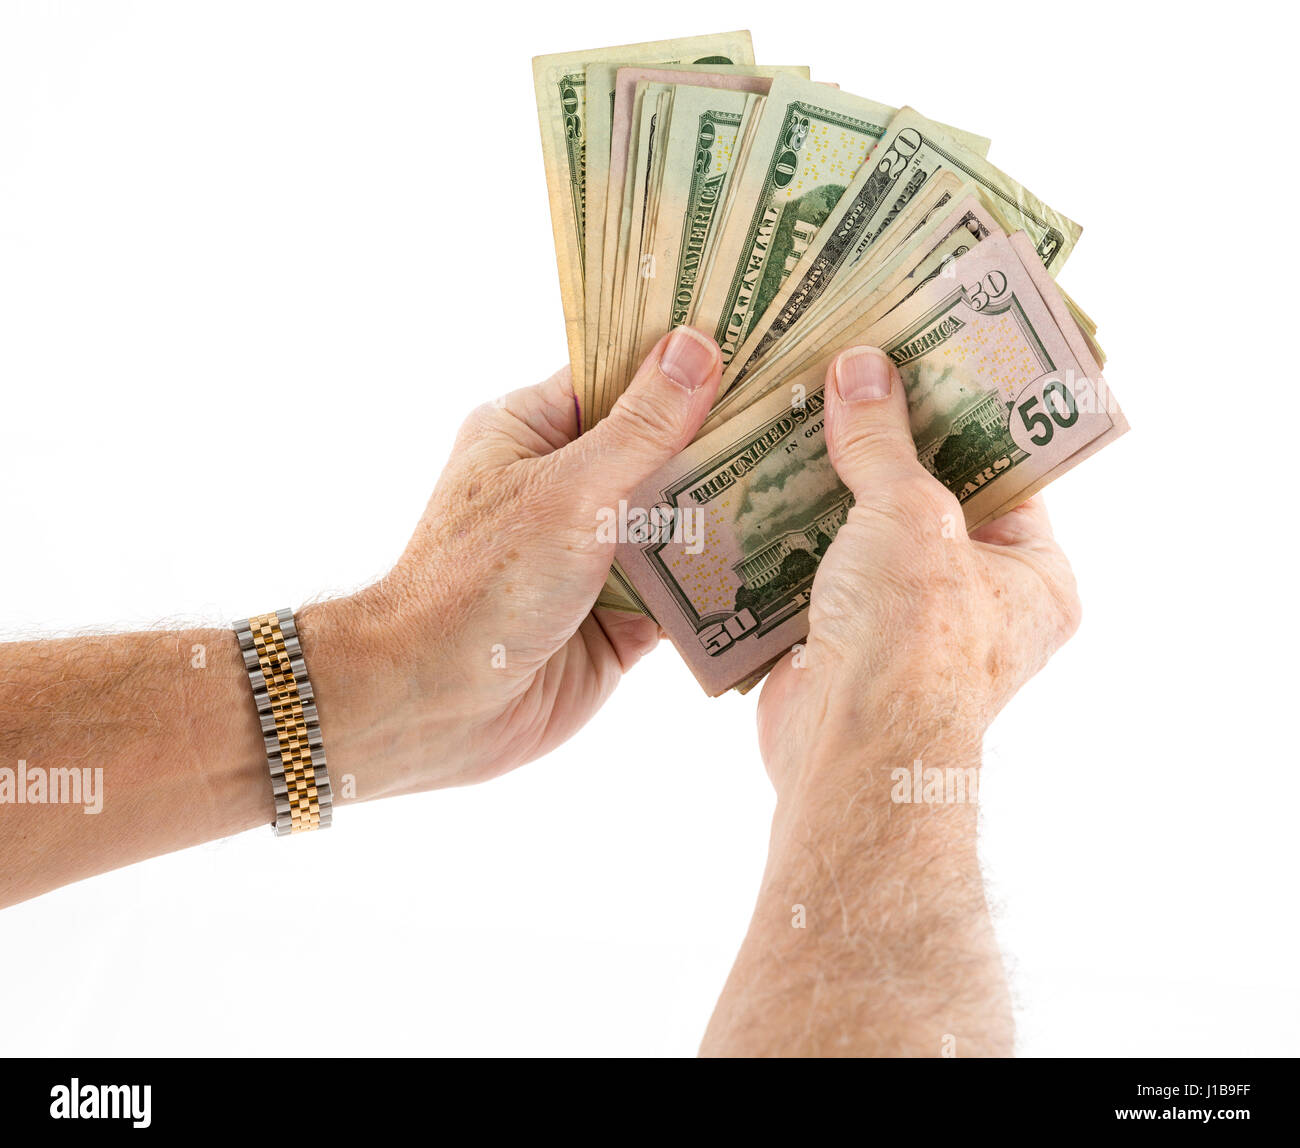 Holding a fan of money - fifty and twenty US dollar bills bank notes - Stock Image